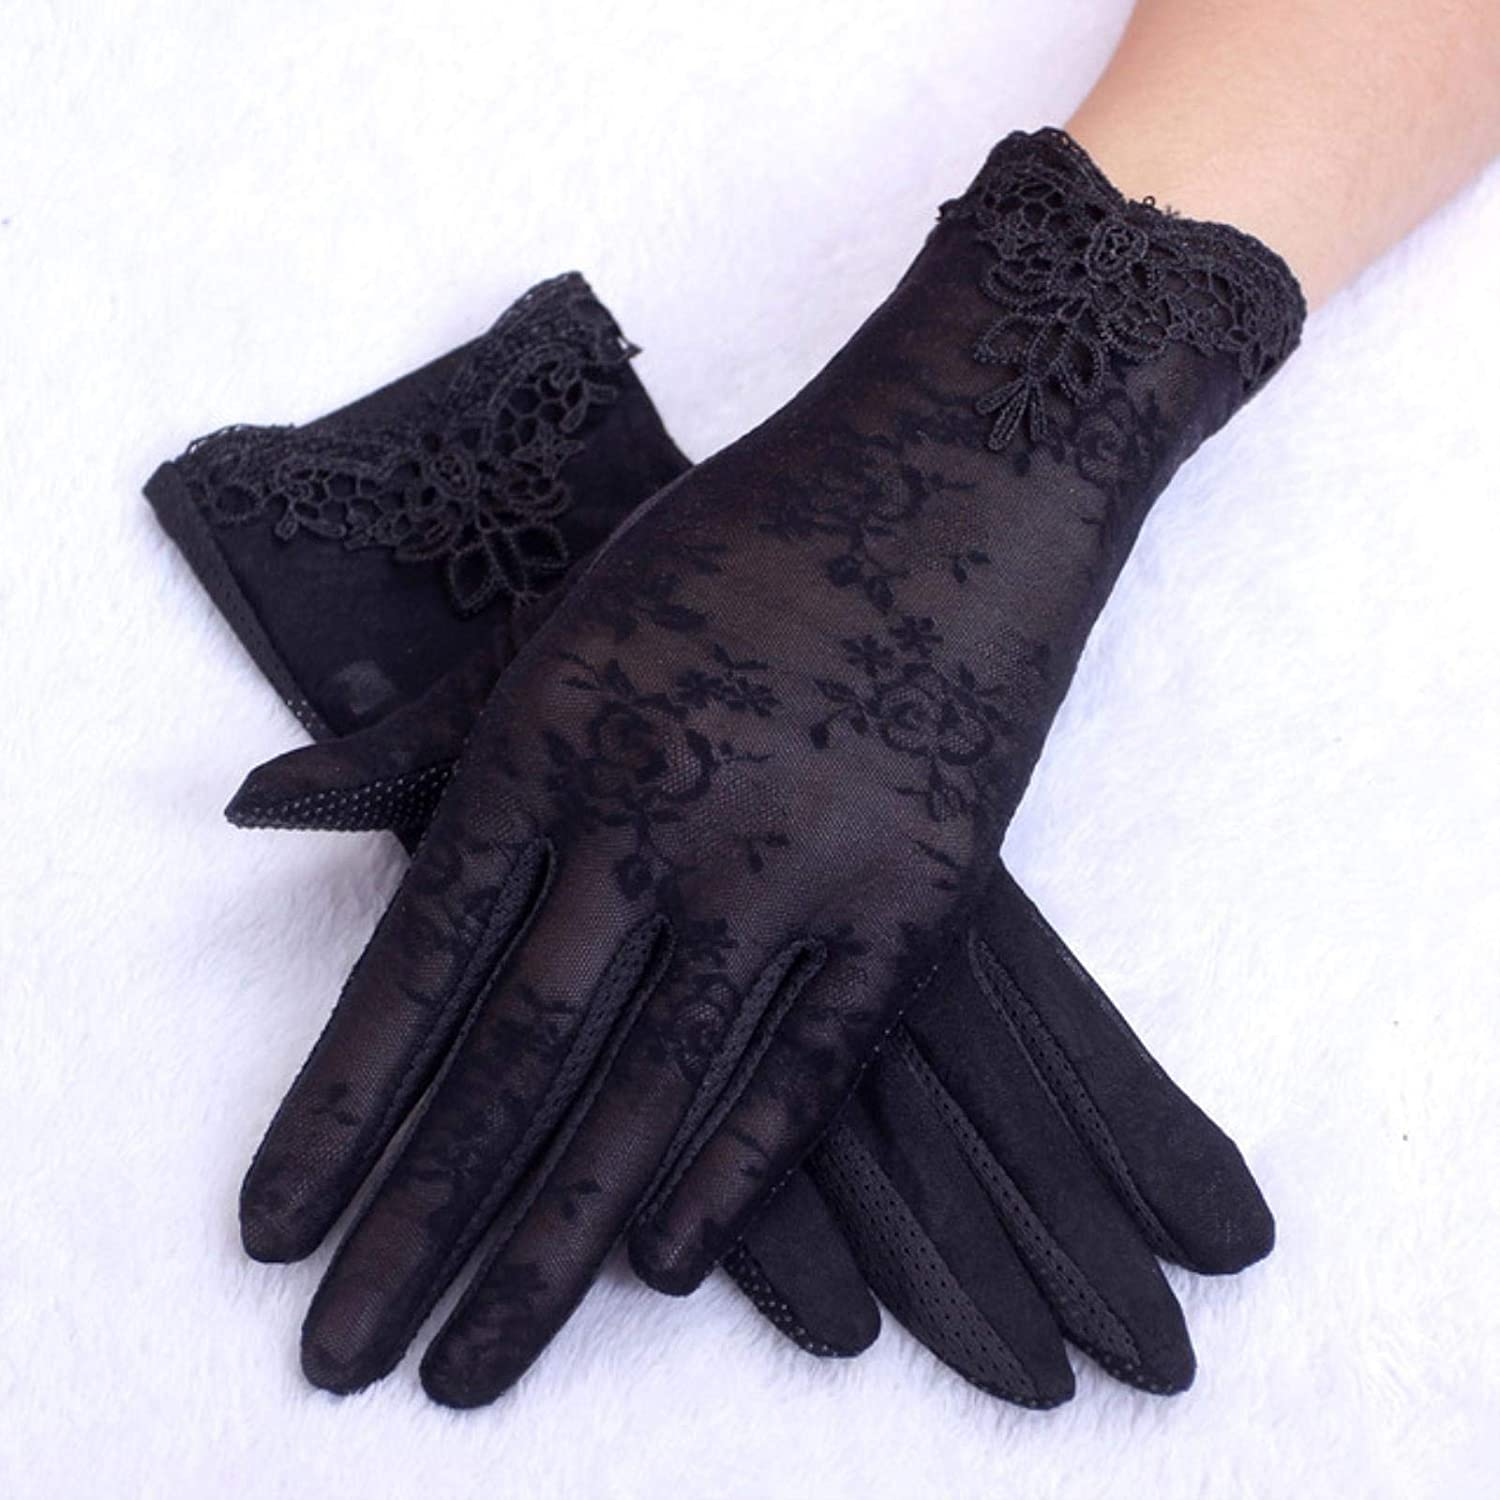 Winter gloves for women Summer UV-Proof Bicycle Driving Gloves Outdoor Warm female Gloves Lace gloves